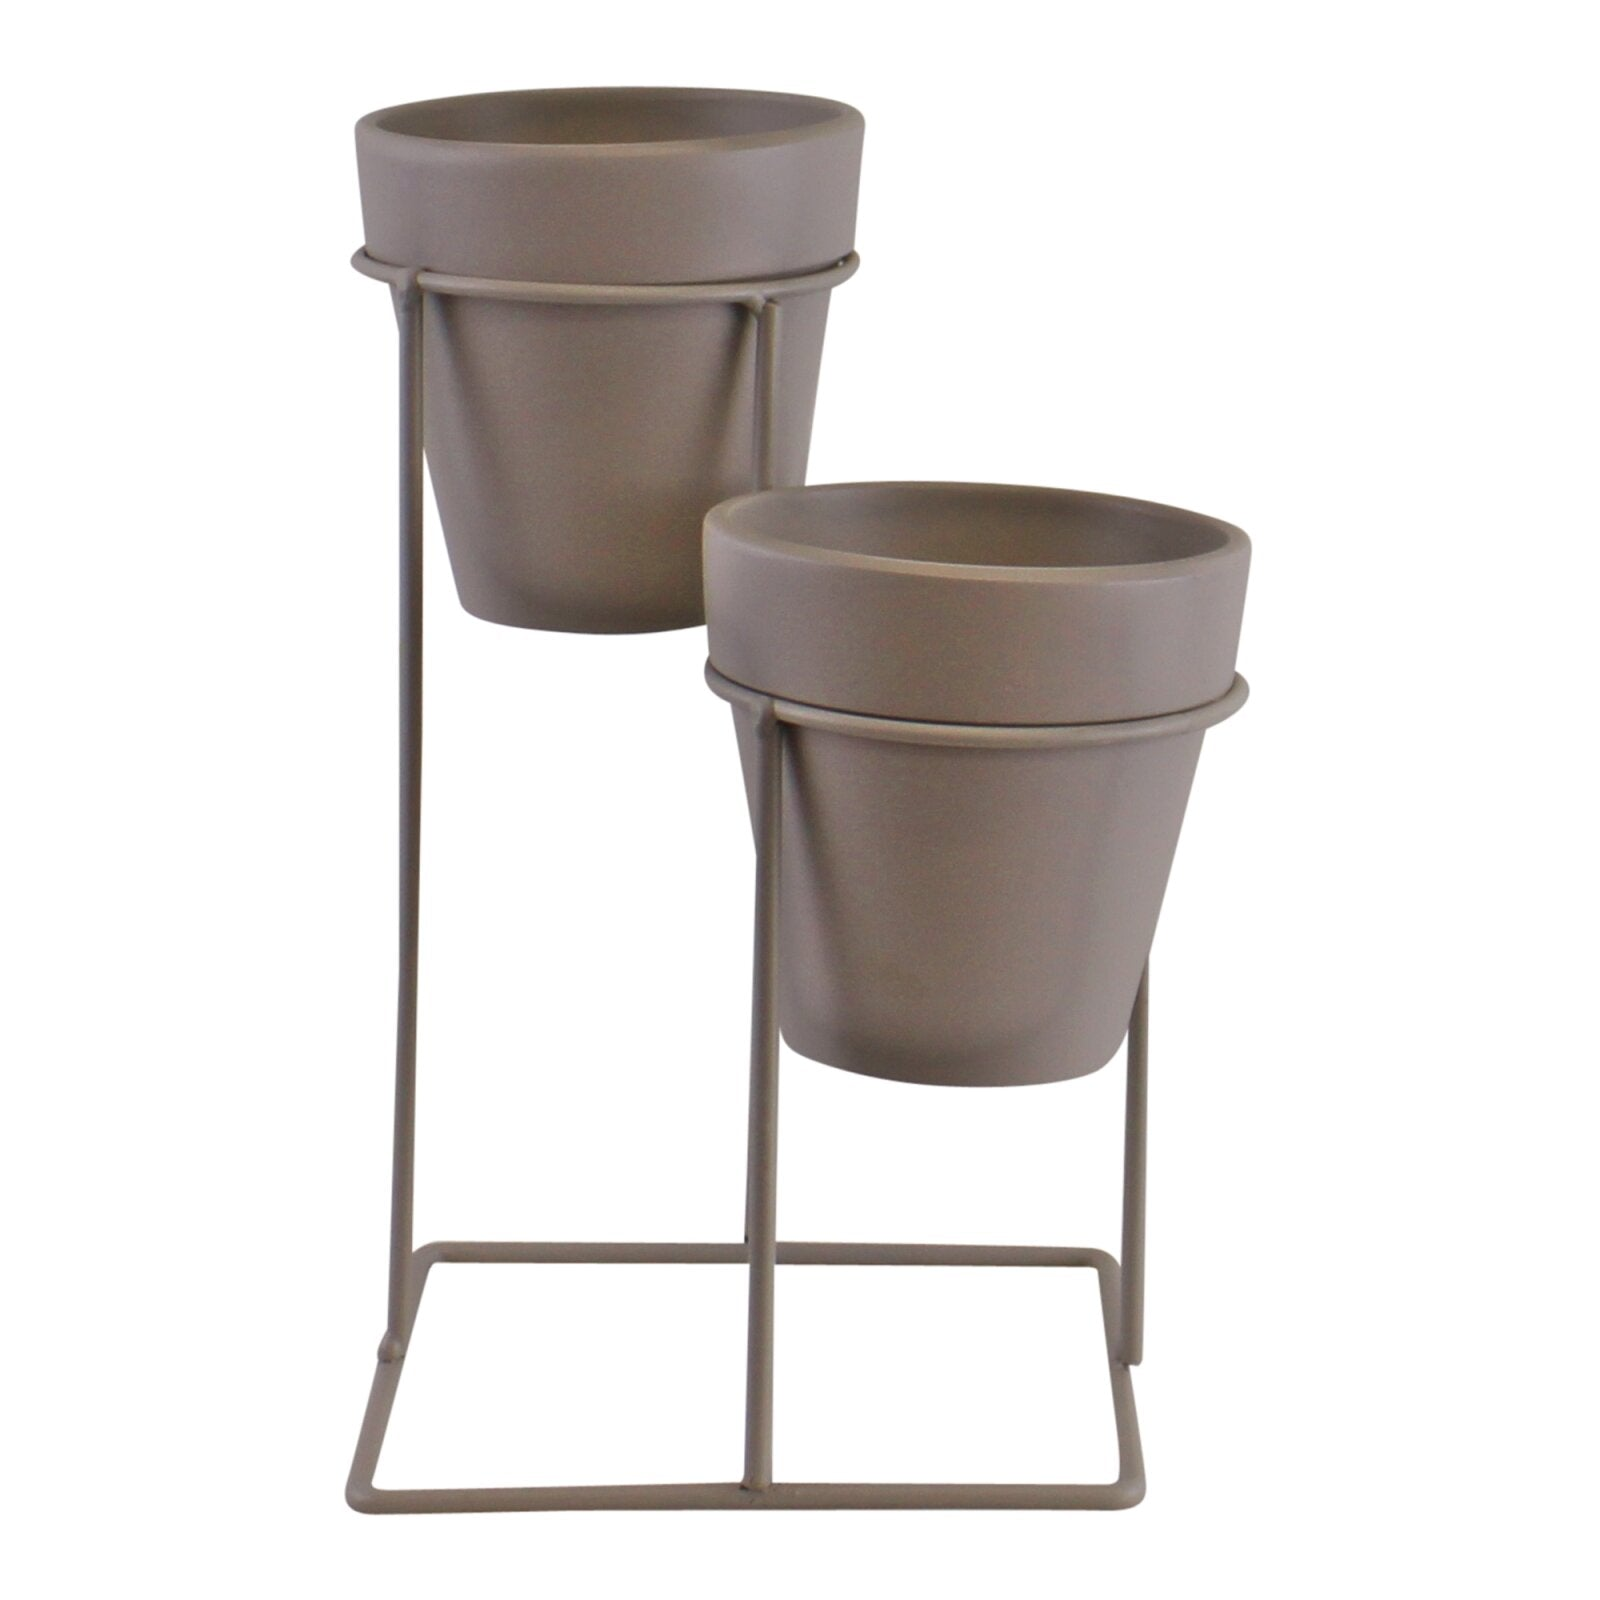 Potting Shed Small Double Planter On Stand, Grey, Lawn & Garden by Low Cost Gifts